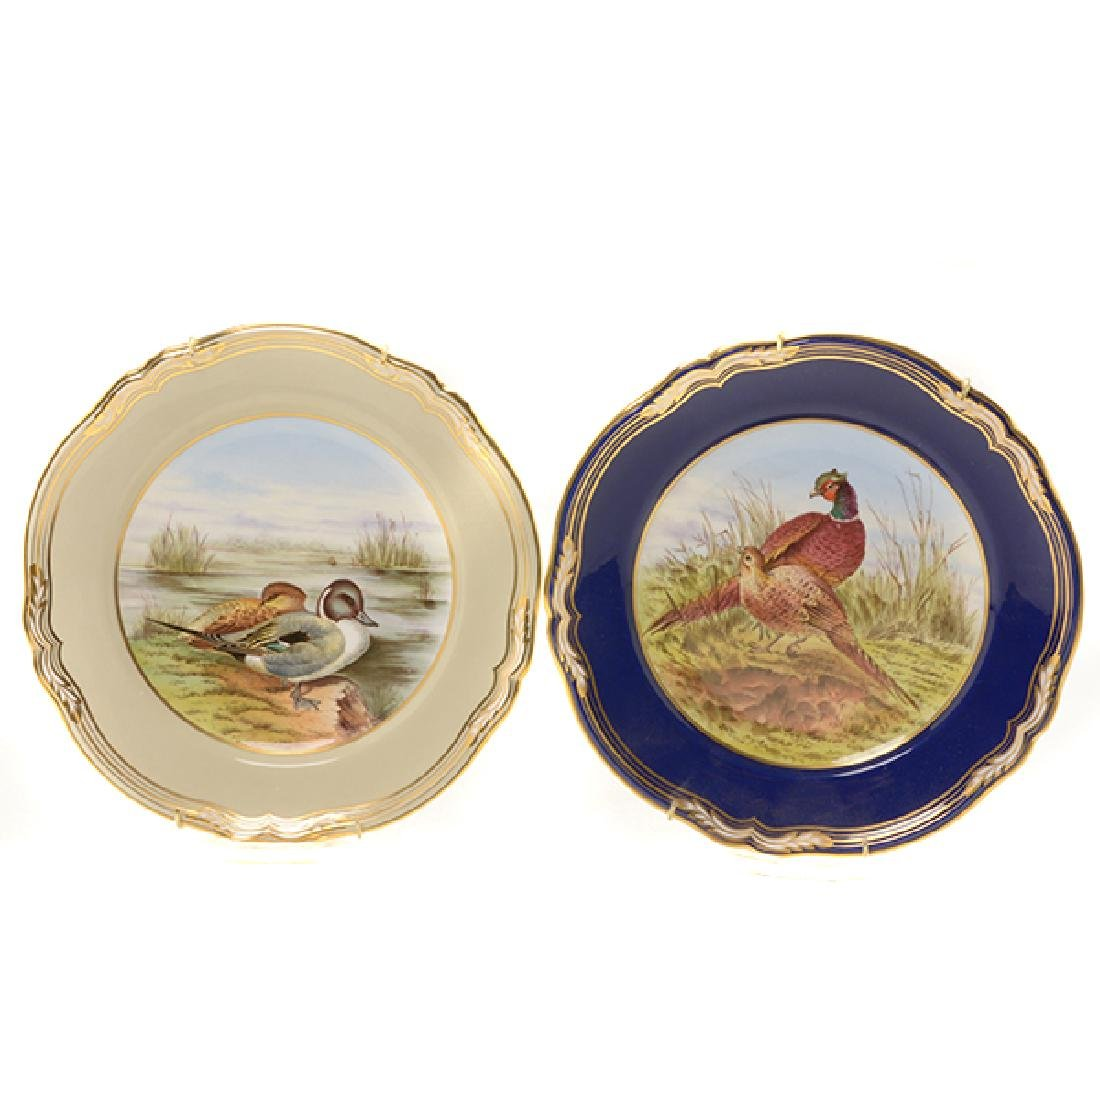 Twelve Spode Plates of Ducks, Fish, and Wildflowers - 5